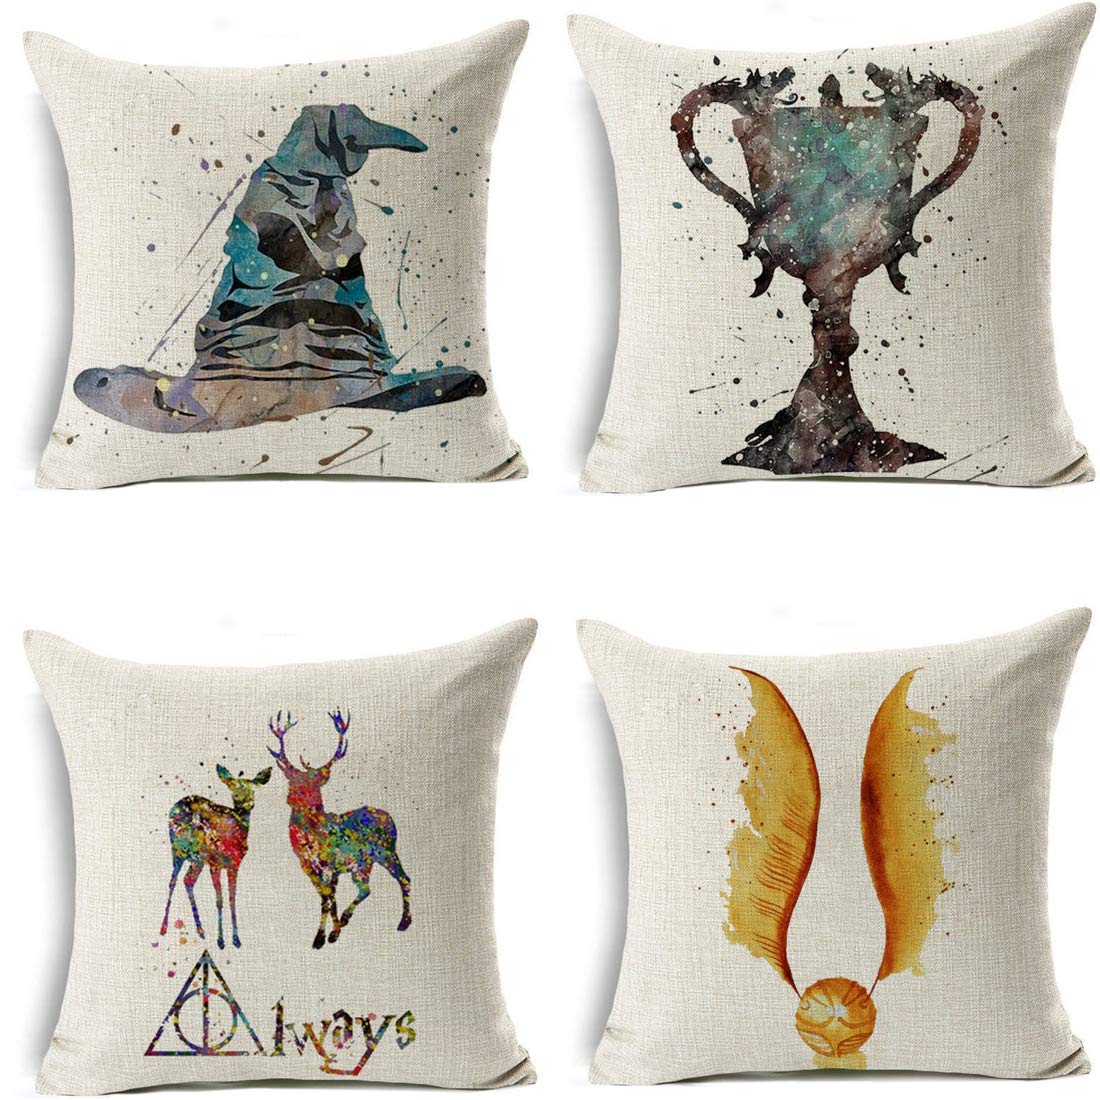 4PC Decorative Pillowcase Set Throw Pillow case Pillow Cover Cotton Linen Cushion Covers for Home//car//bar//Restaurant 18 x 18 inch-Harry Potter 090725 Cayyon